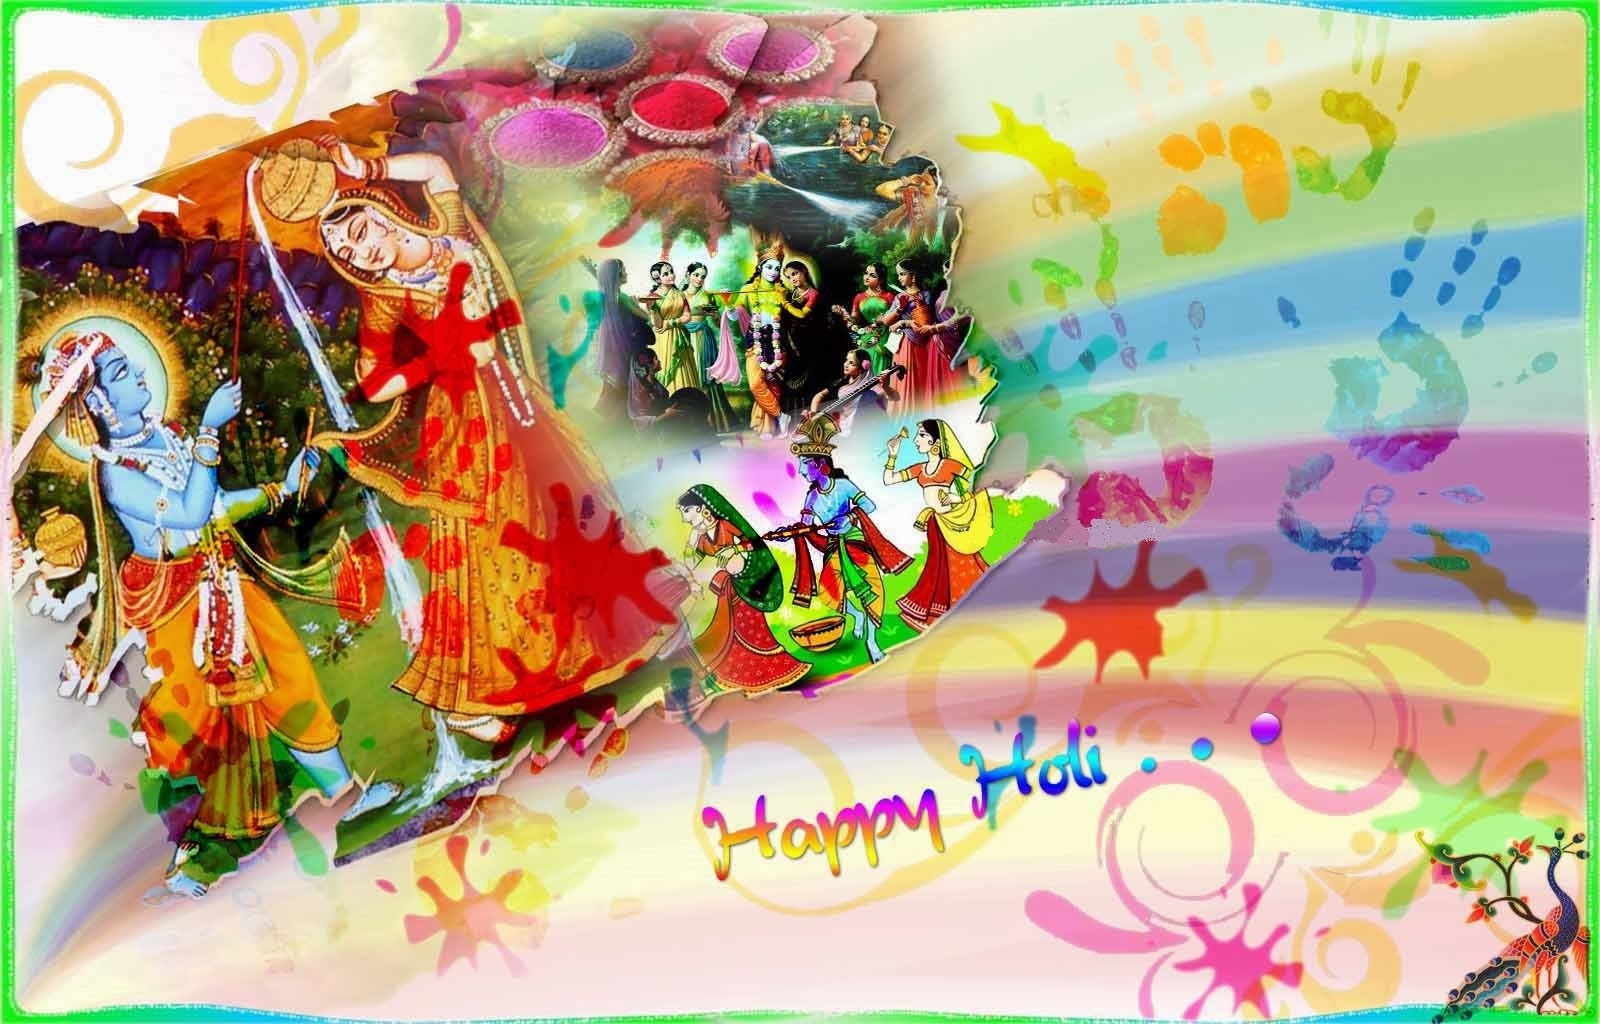 Happy Holi 2014 Lovely HD Images and Pictures radha krishna. 1600 x 1024.New Year Wishes For Lover Essays In Hindi Language